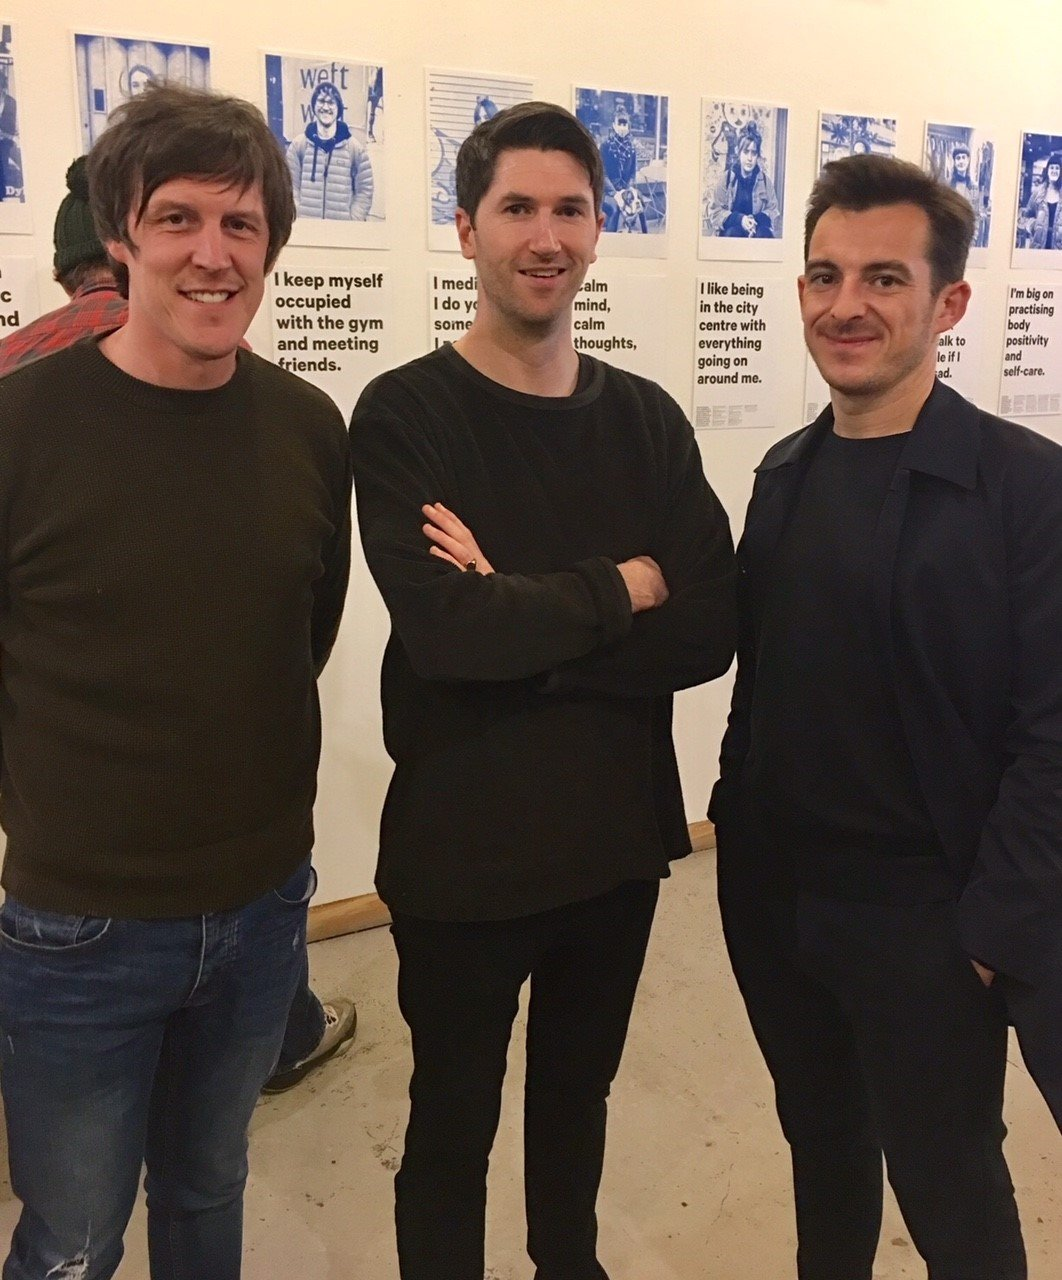 Leighton Baines with Baltic Triangle's Russell Gannon and The Mind Map Editor Phil Bridges